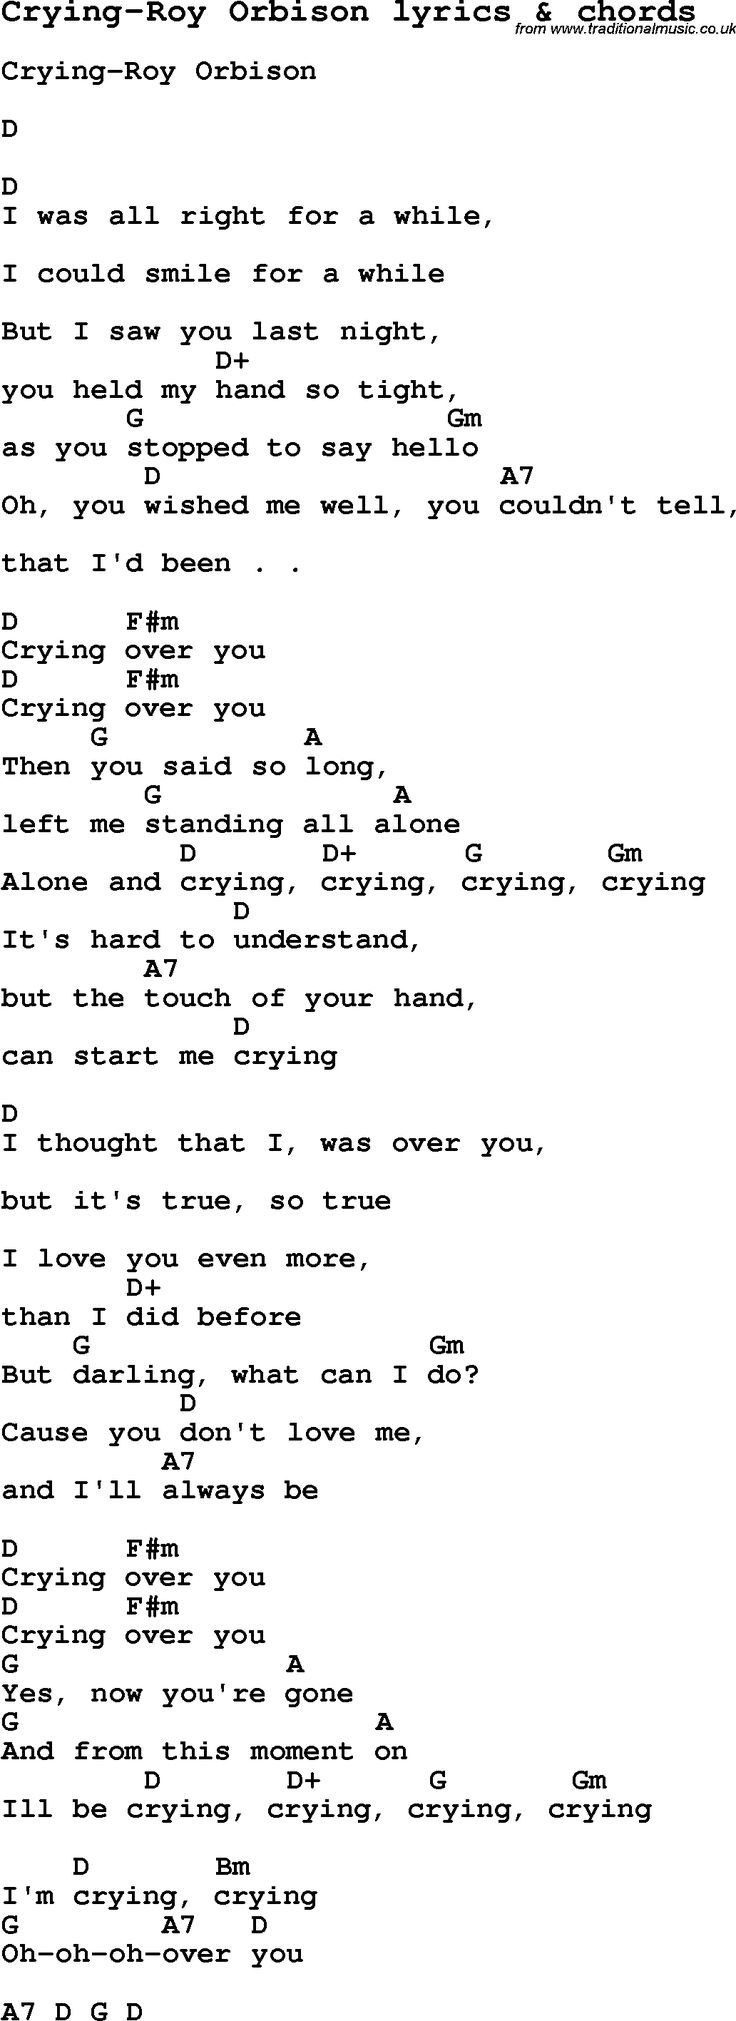 332 best guitar lyrics and chords images on pinterest guitar love song lyrics for crying roy orbison with chords for ukulele guitar banjo hexwebz Images